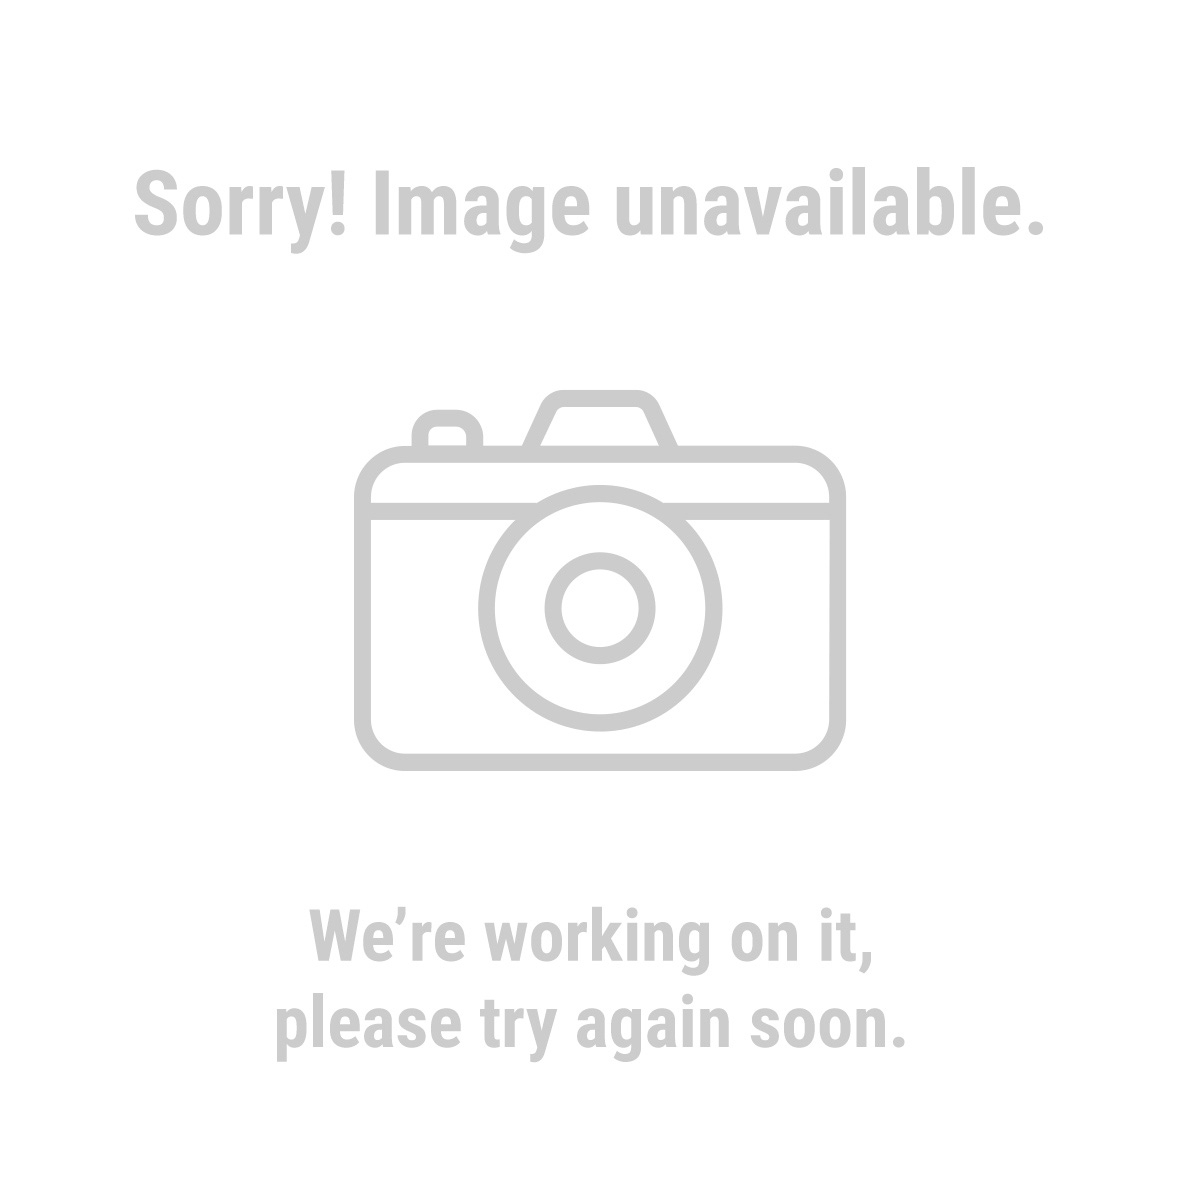 Pittsburgh 31675 6 Piece Precision Pliers Set